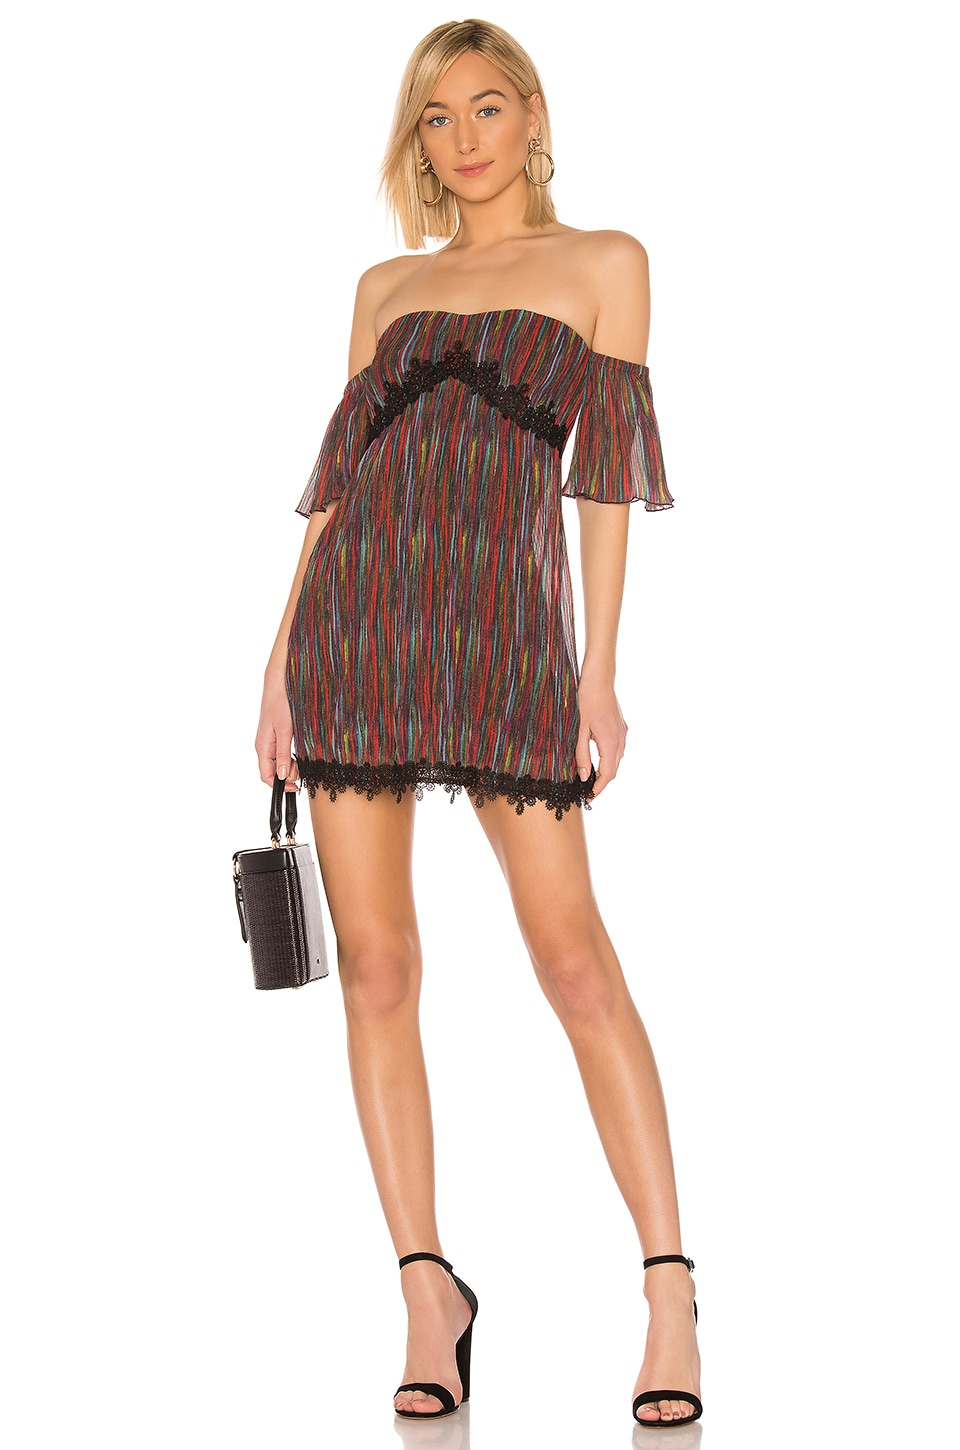 House of Harlow 1960 X REVOLVE Sofia Mini Dress in Multi